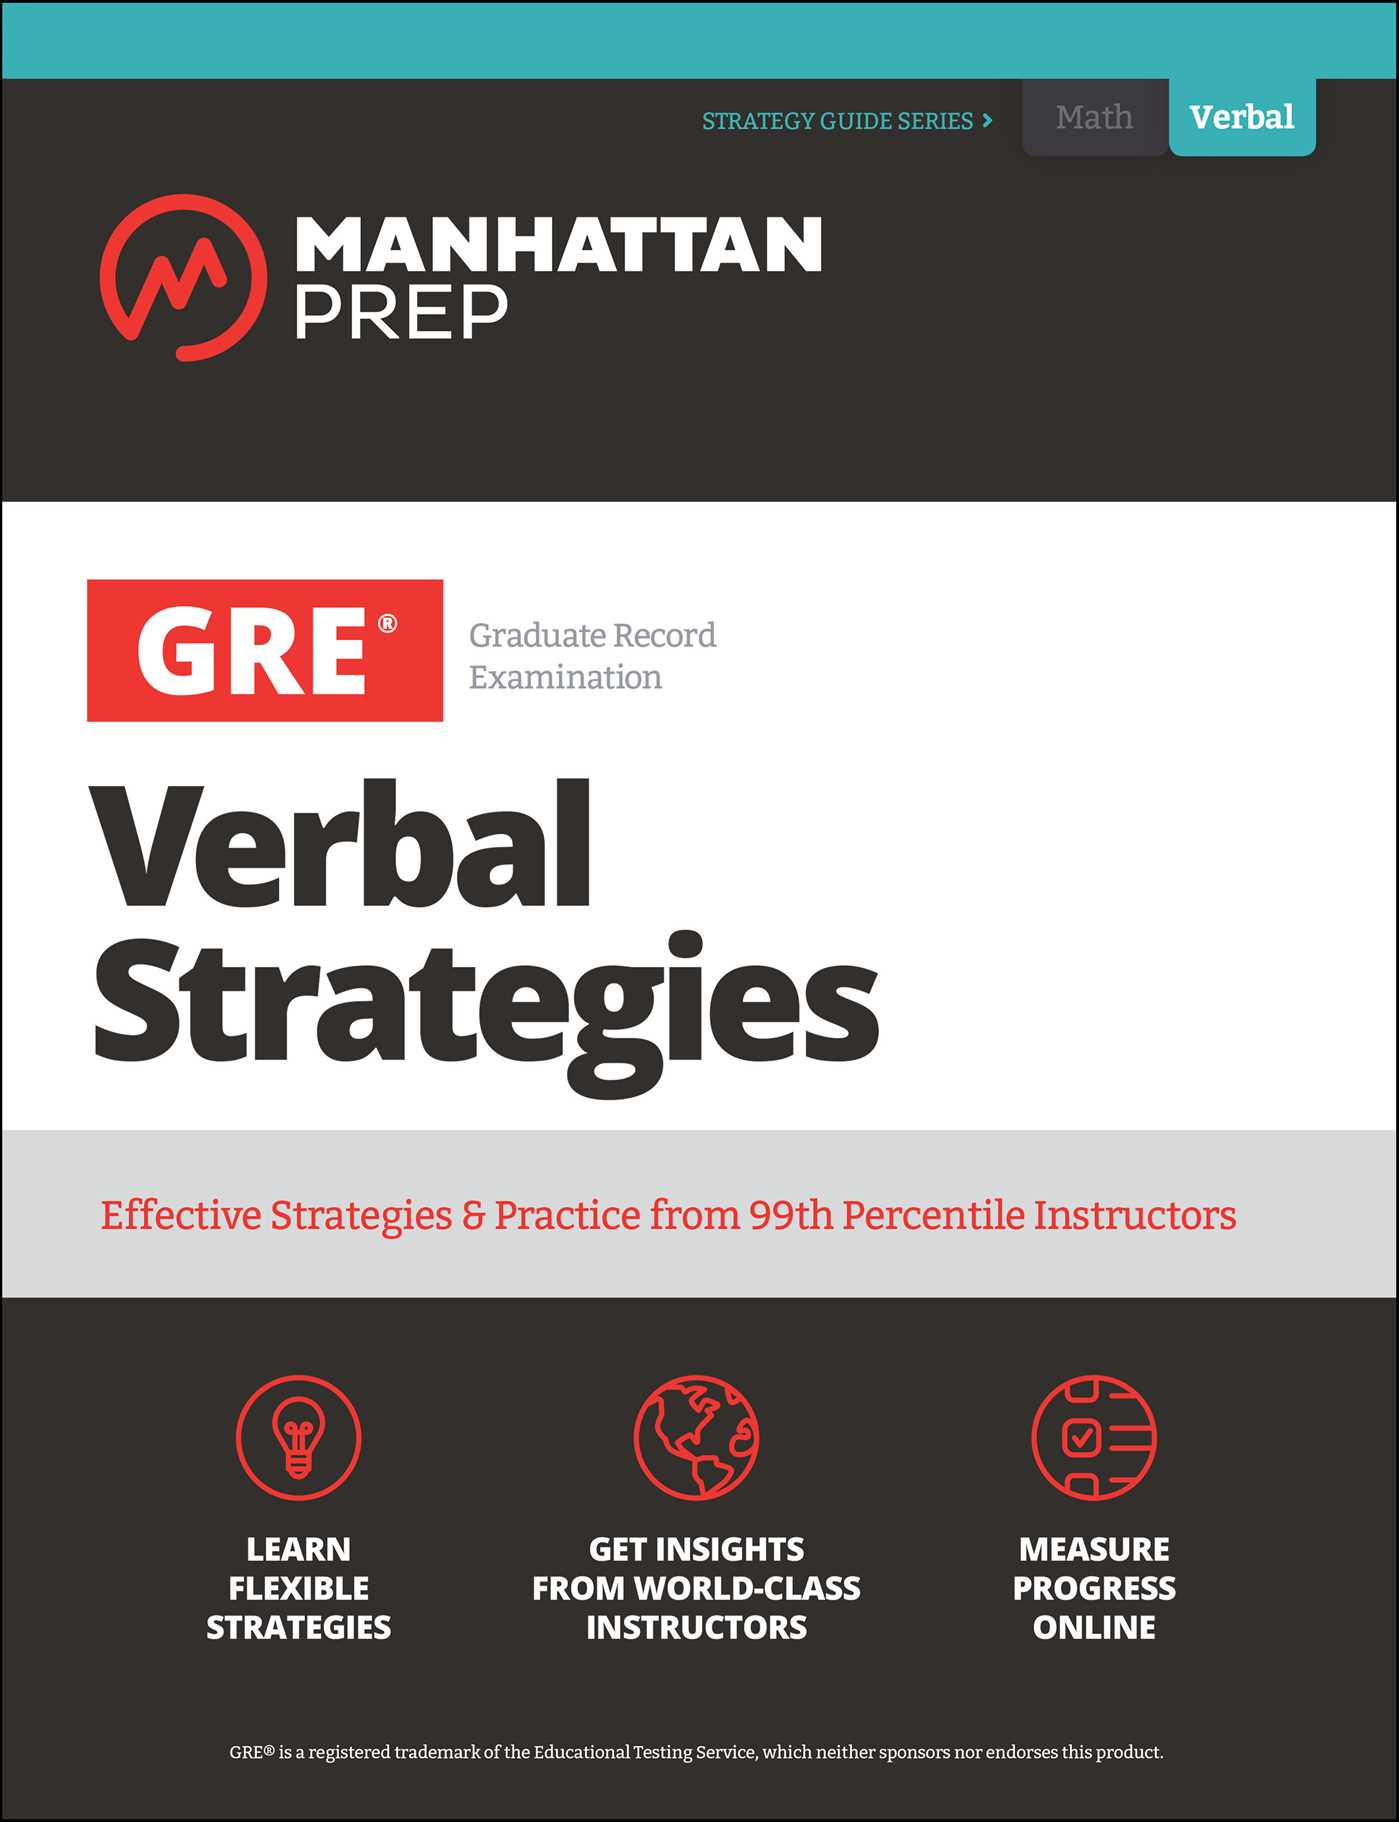 GRE Verbal Strategies Effective Strategies & Practice from 99th Percentile Instructors